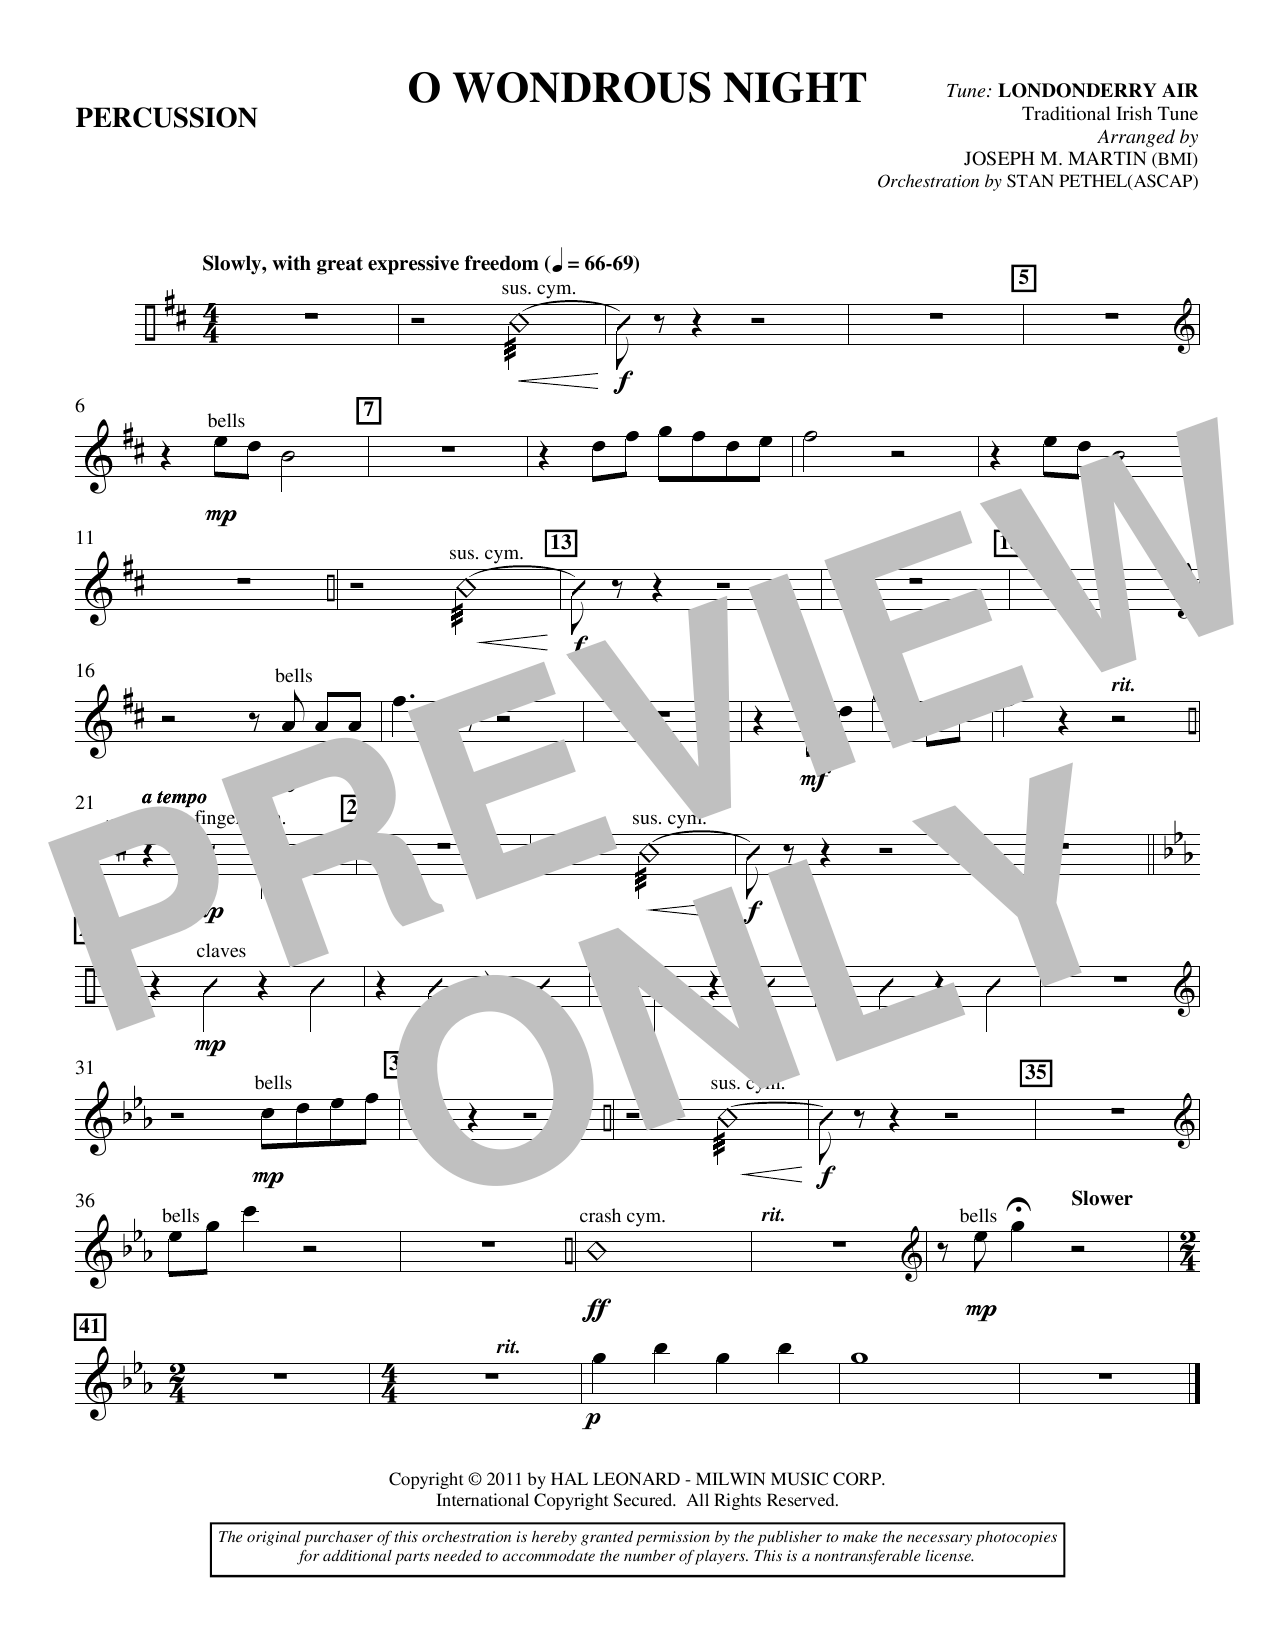 O Wondrous Night - Percussion Sheet Music